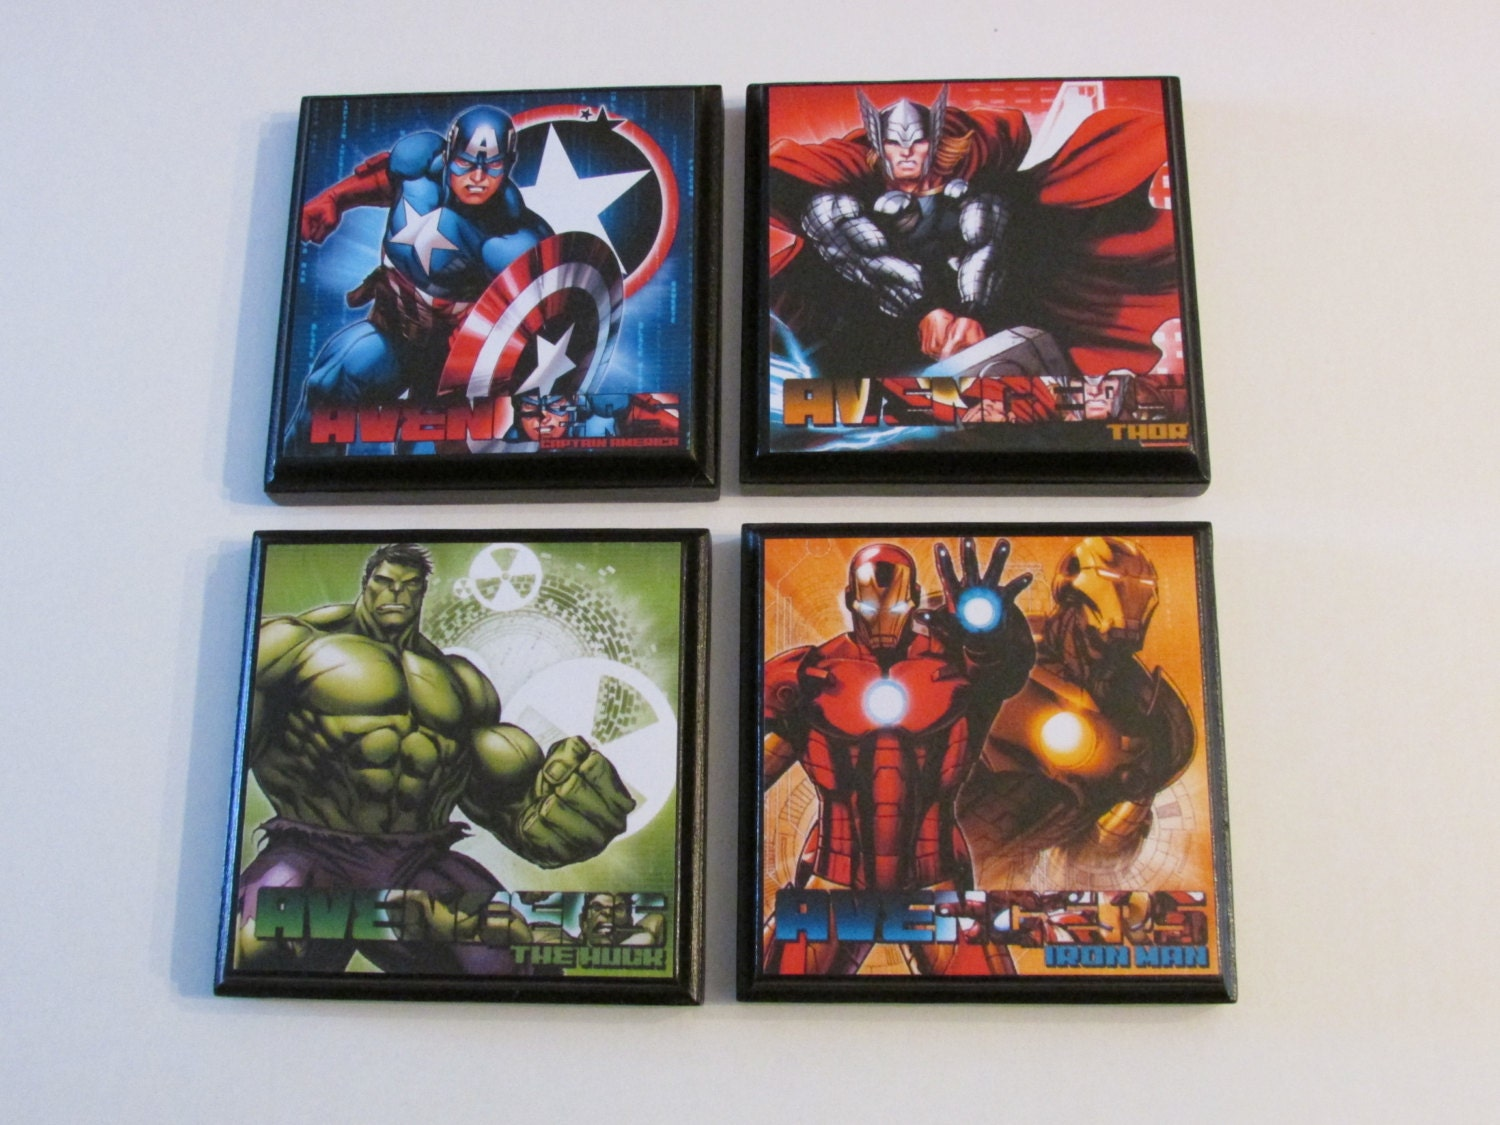 Avengers Room Wall Plaques   Set of 4 Avengers Boys Room Decor   Captain  America Hulk Iron Man Thor Wall Signs. Avengers bedroom   Etsy